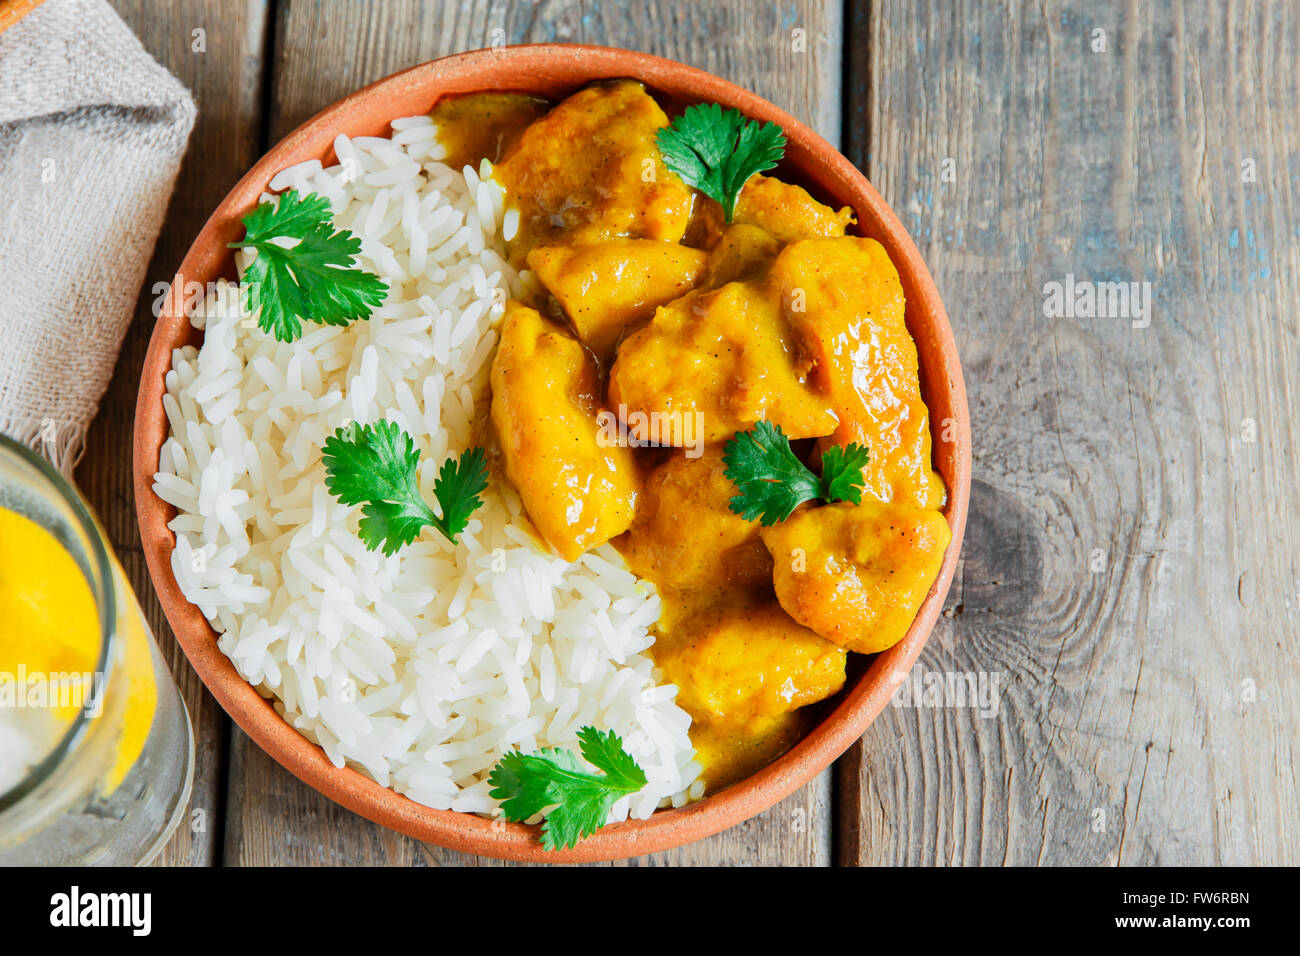 chicken curry with rice on a wooden surface - Stock Image